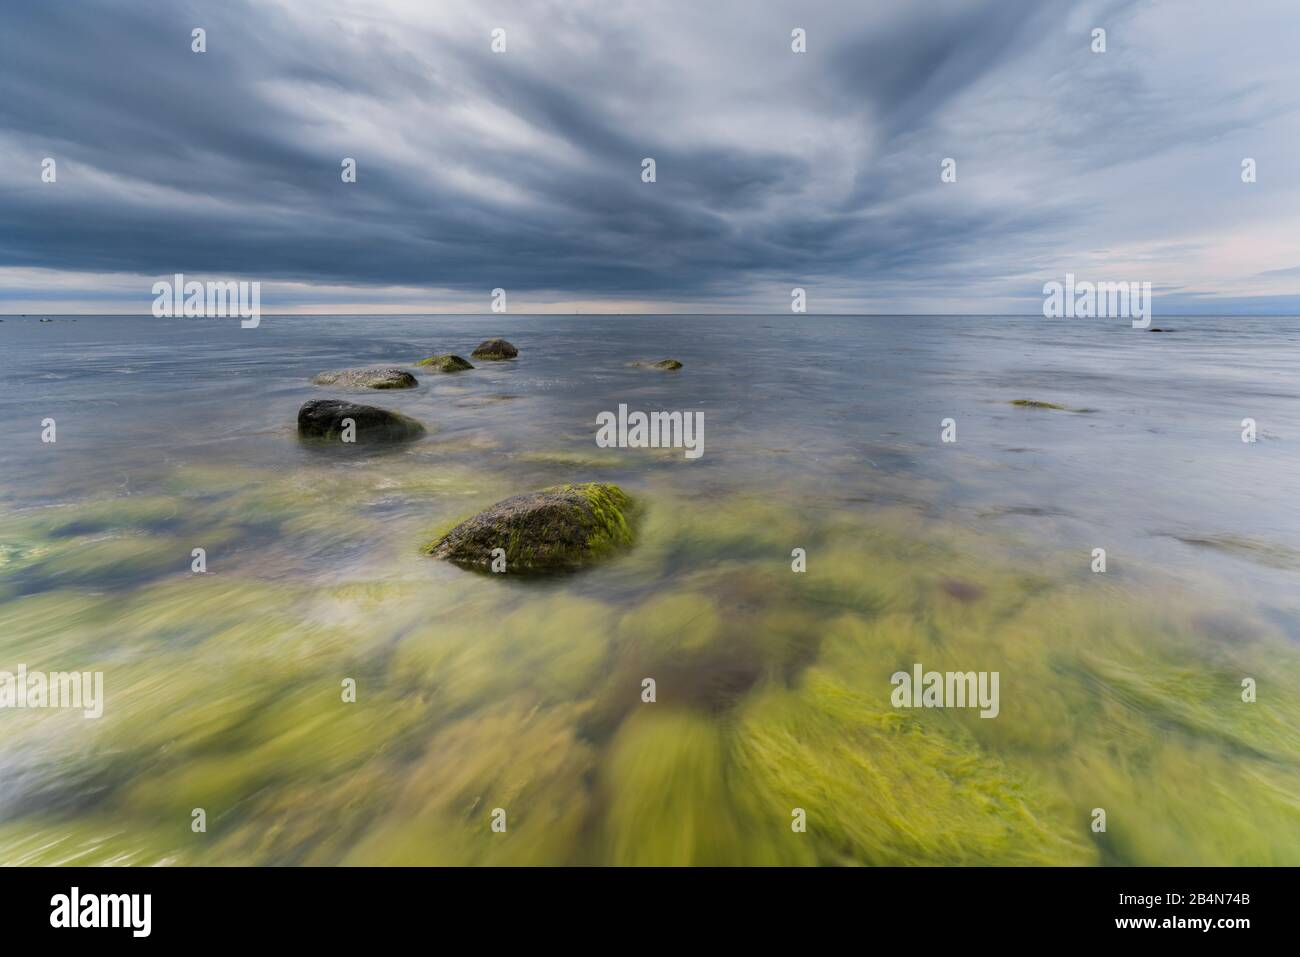 Baltic Sea in the evening light, long exposure, beach with stones and algae that are washed by the water, Stock Photo